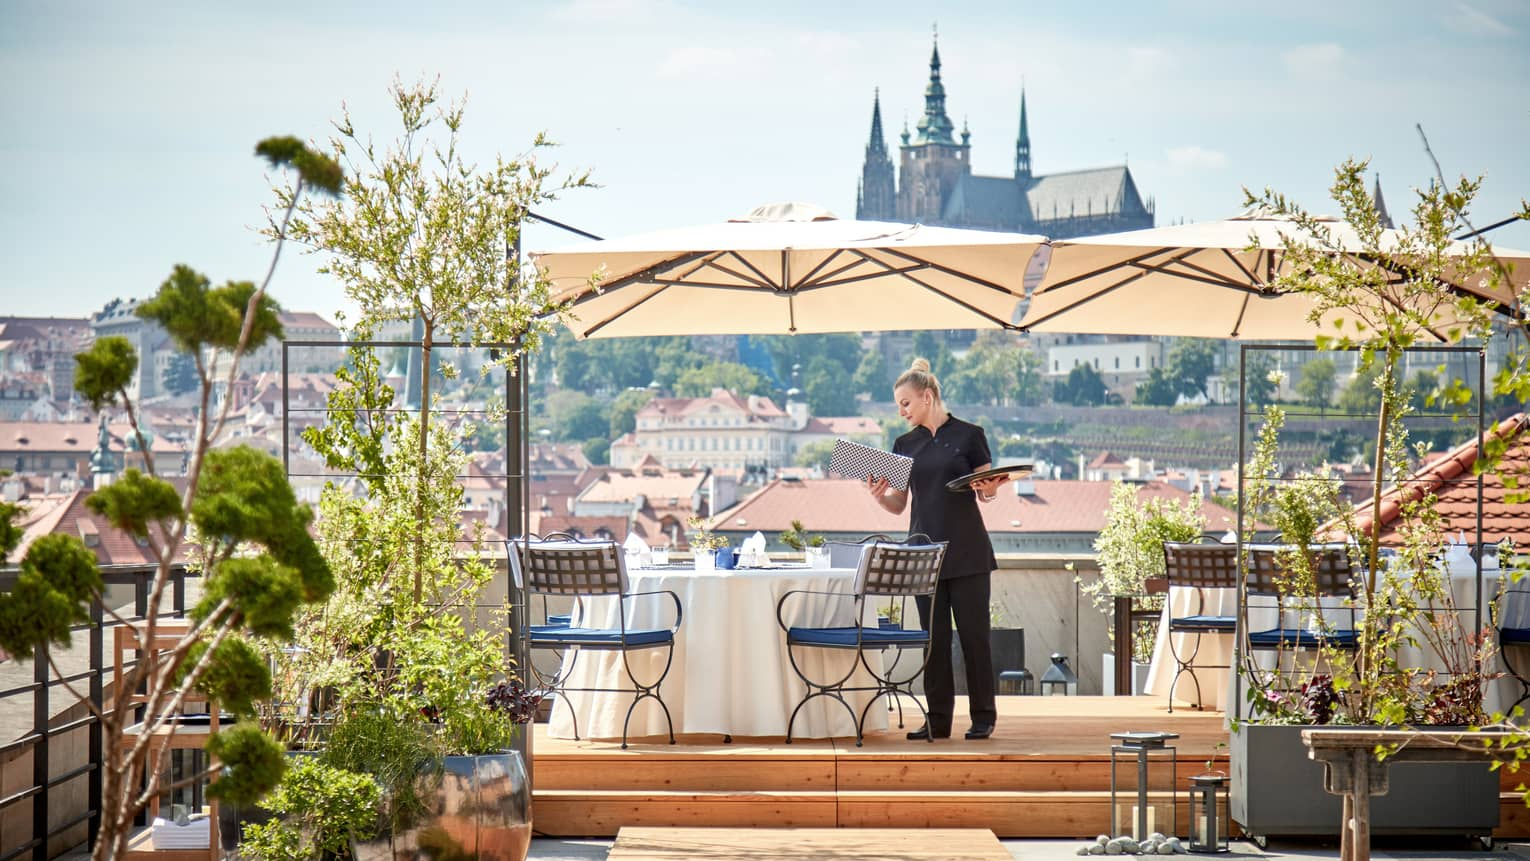 Hotel staff sets dining table under umbrella on rooftop patio overlooking sunny Prague city